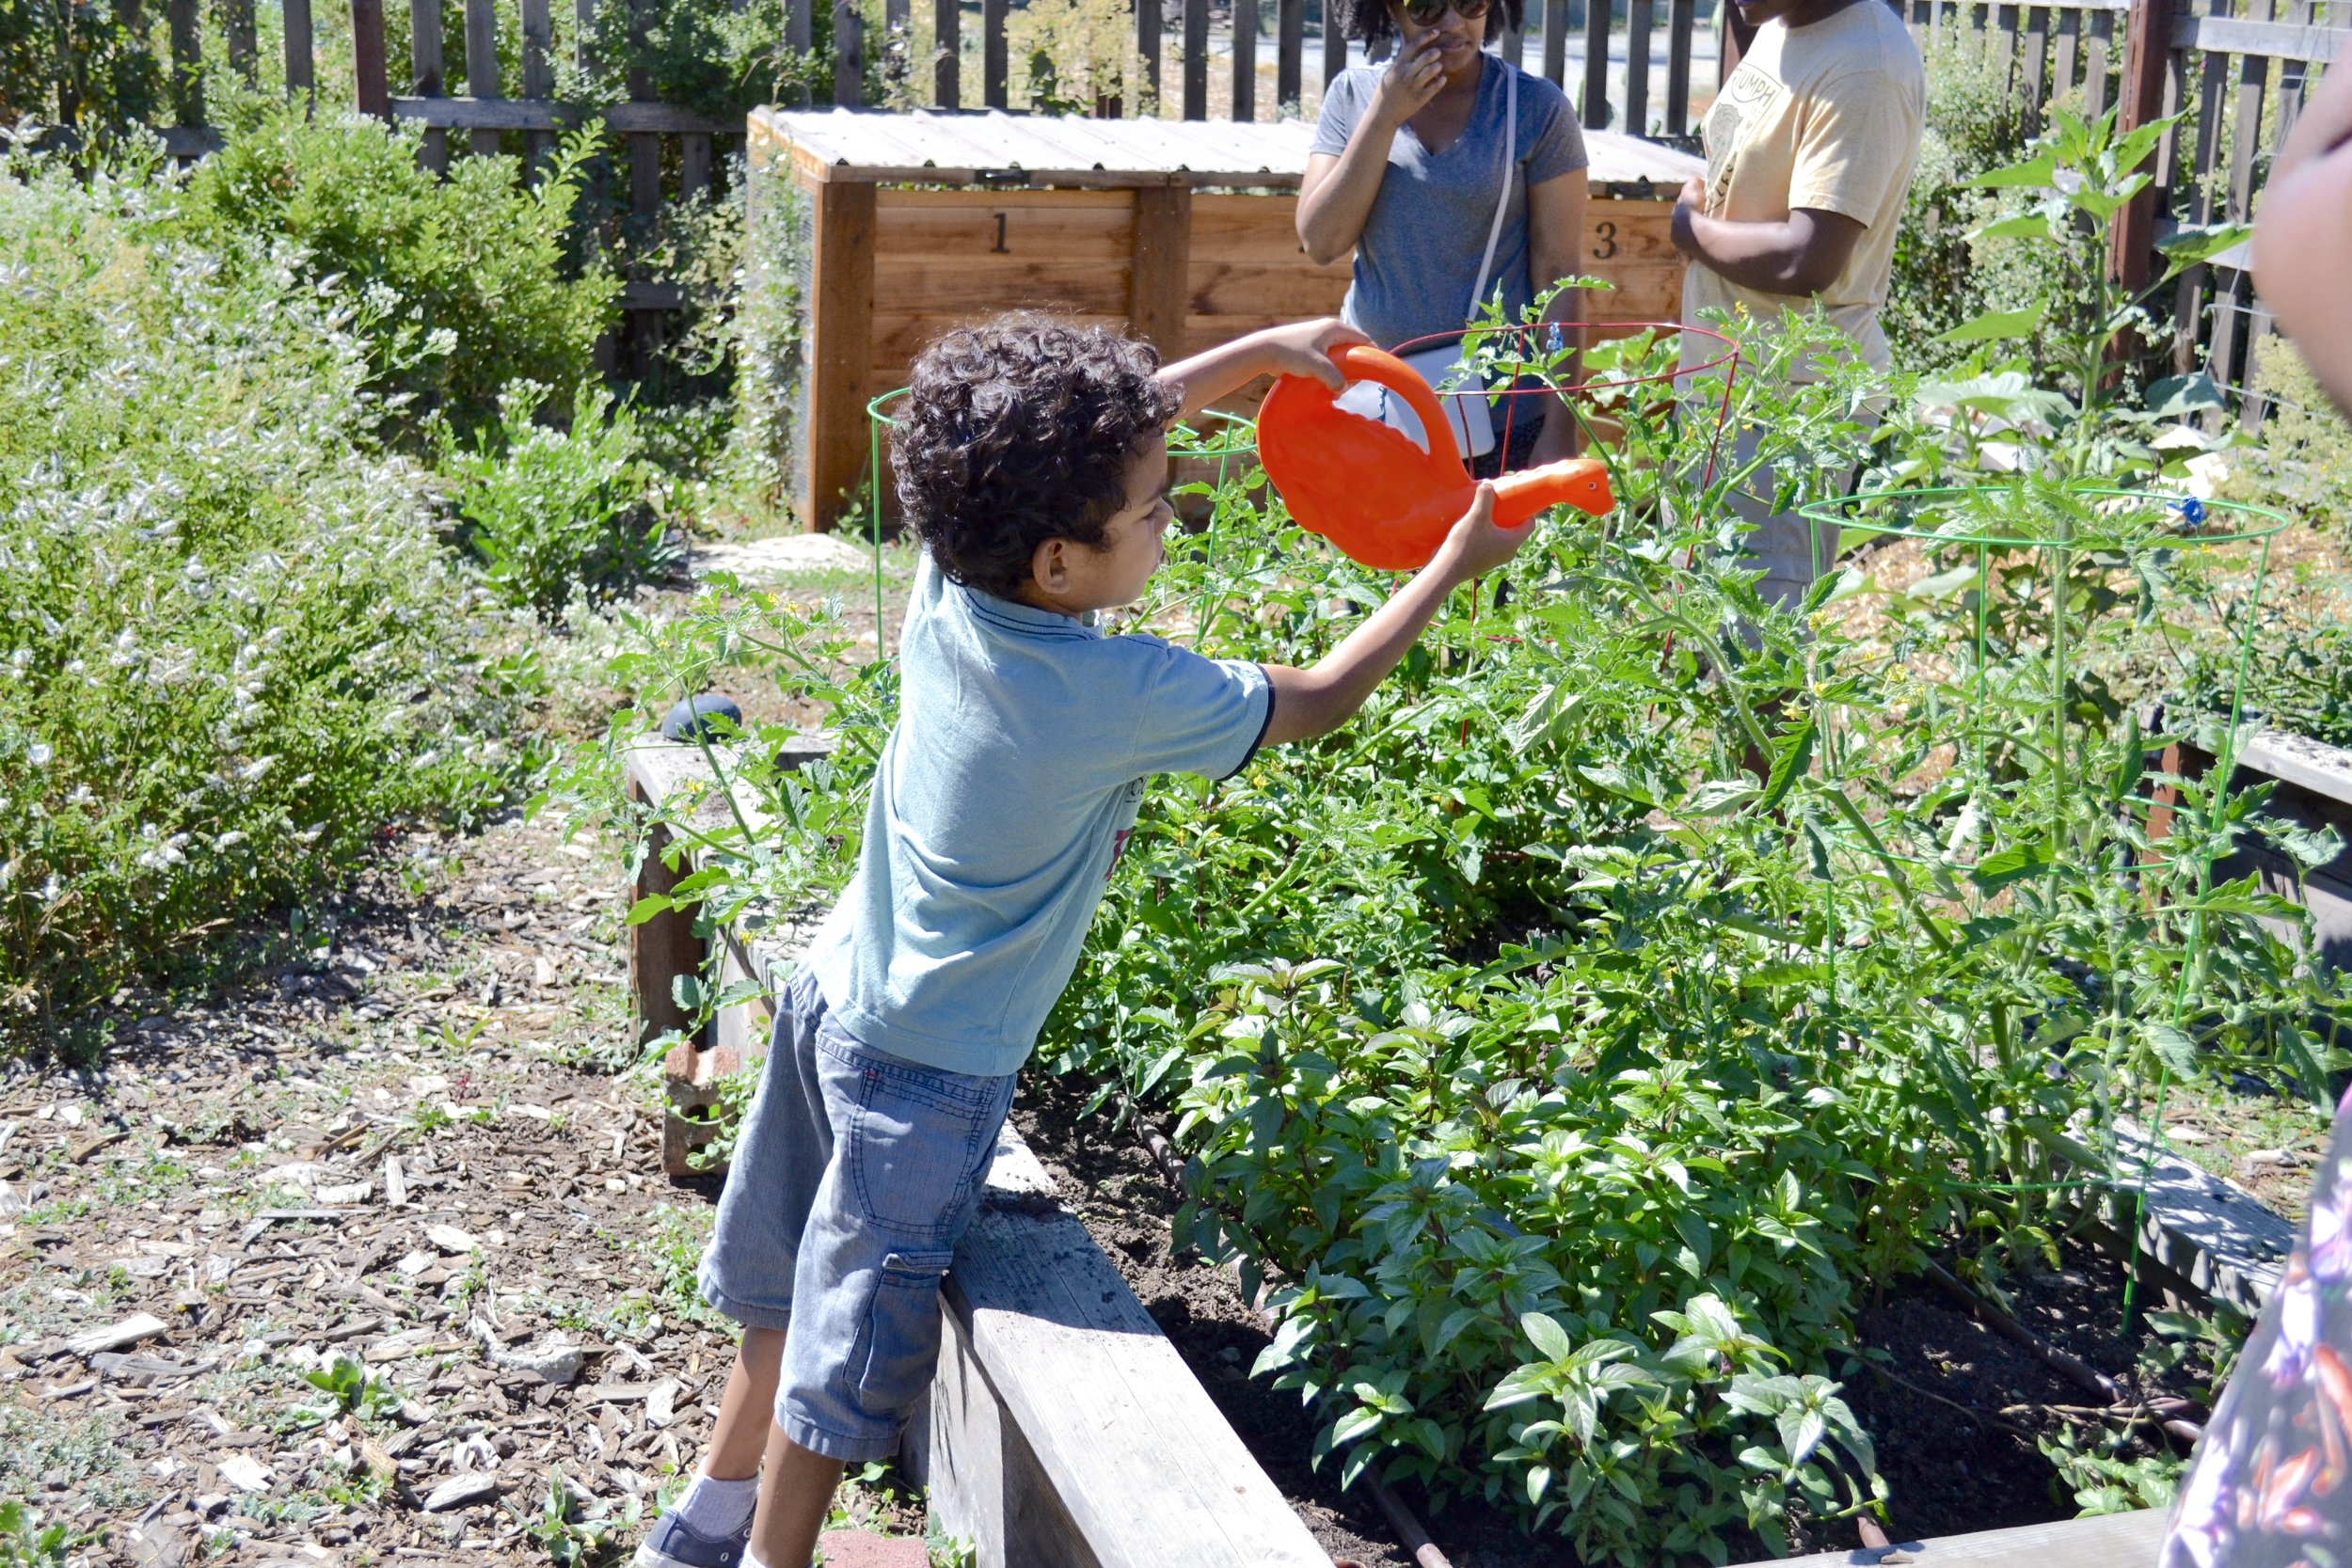 Youth Garden - 10 A.M - 12:30 P.M